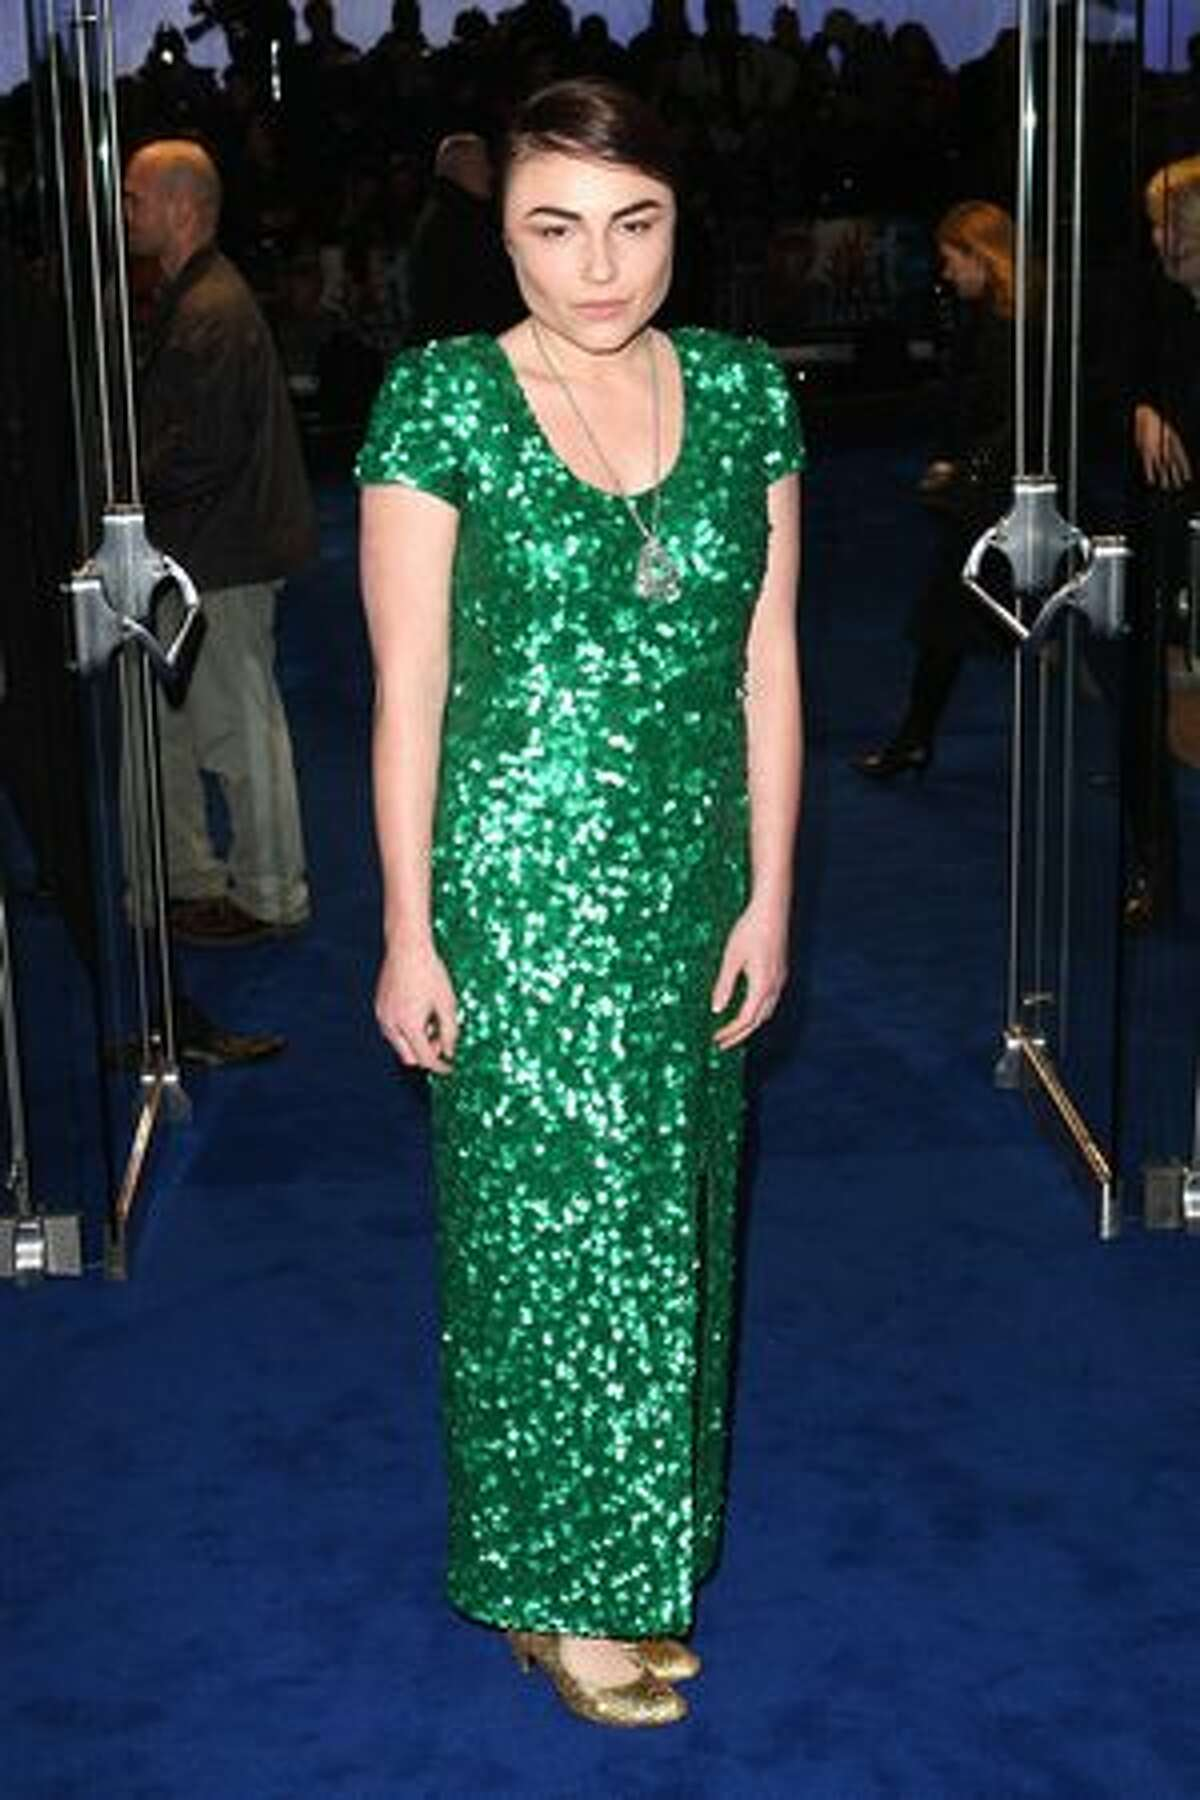 Lois Winstone attends the world premiere of Avatar held at The Odeon Leicester Square in London, England.